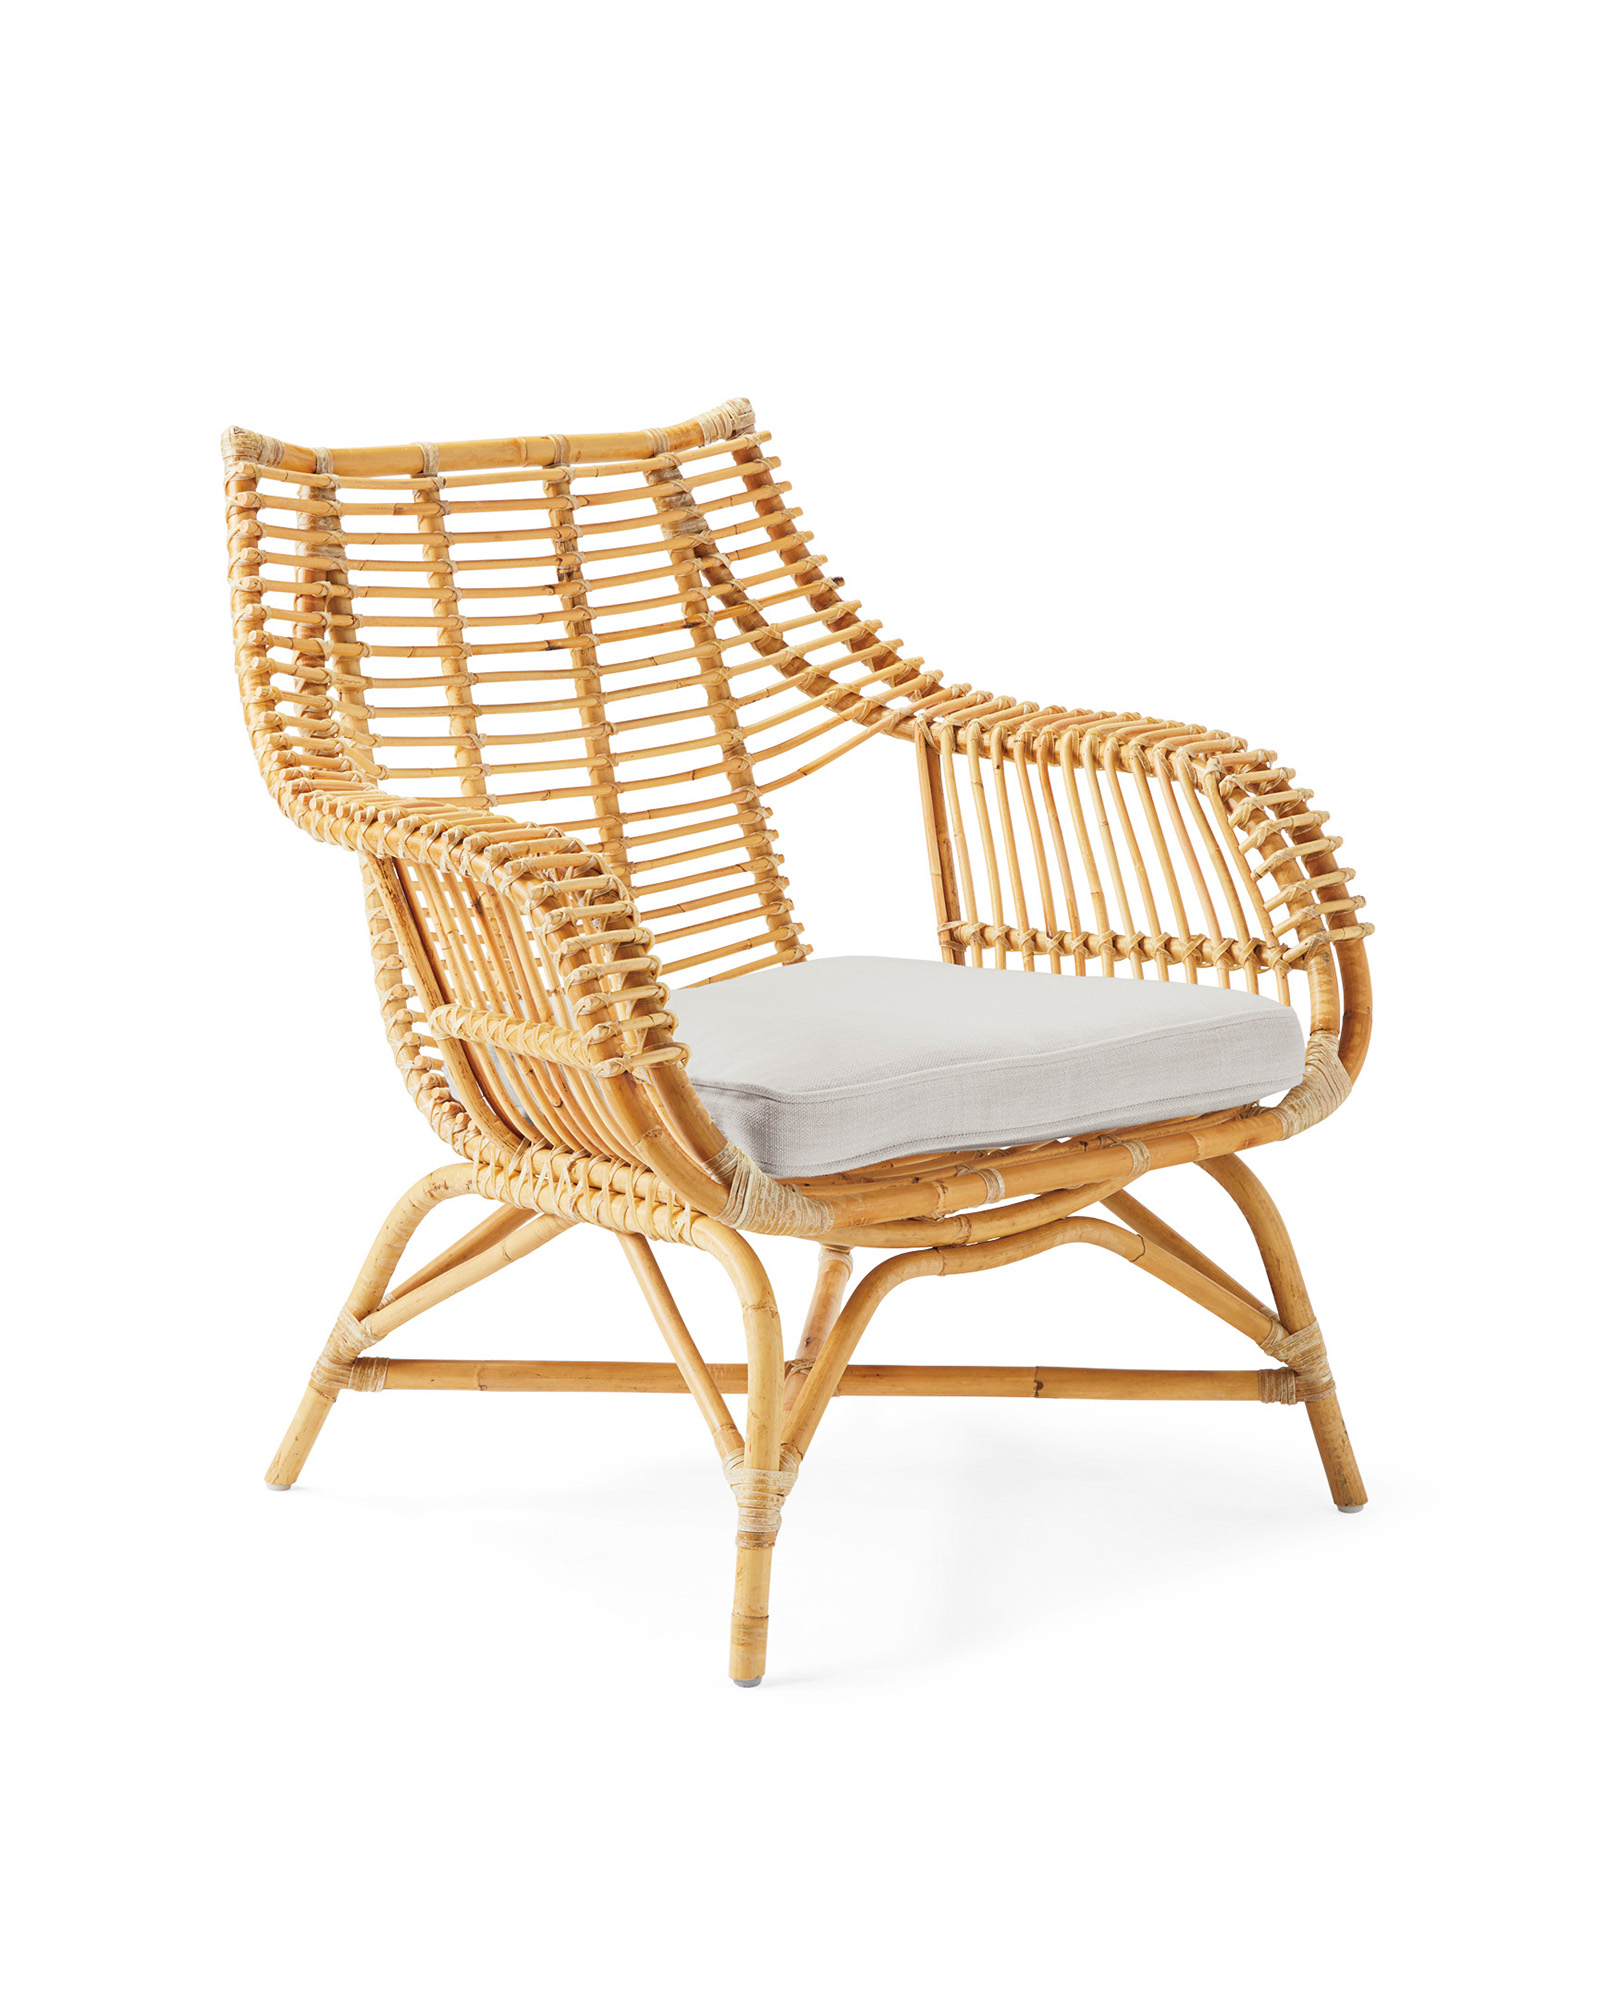 Venice Rattan Chair, Perennials Basketweave Fog